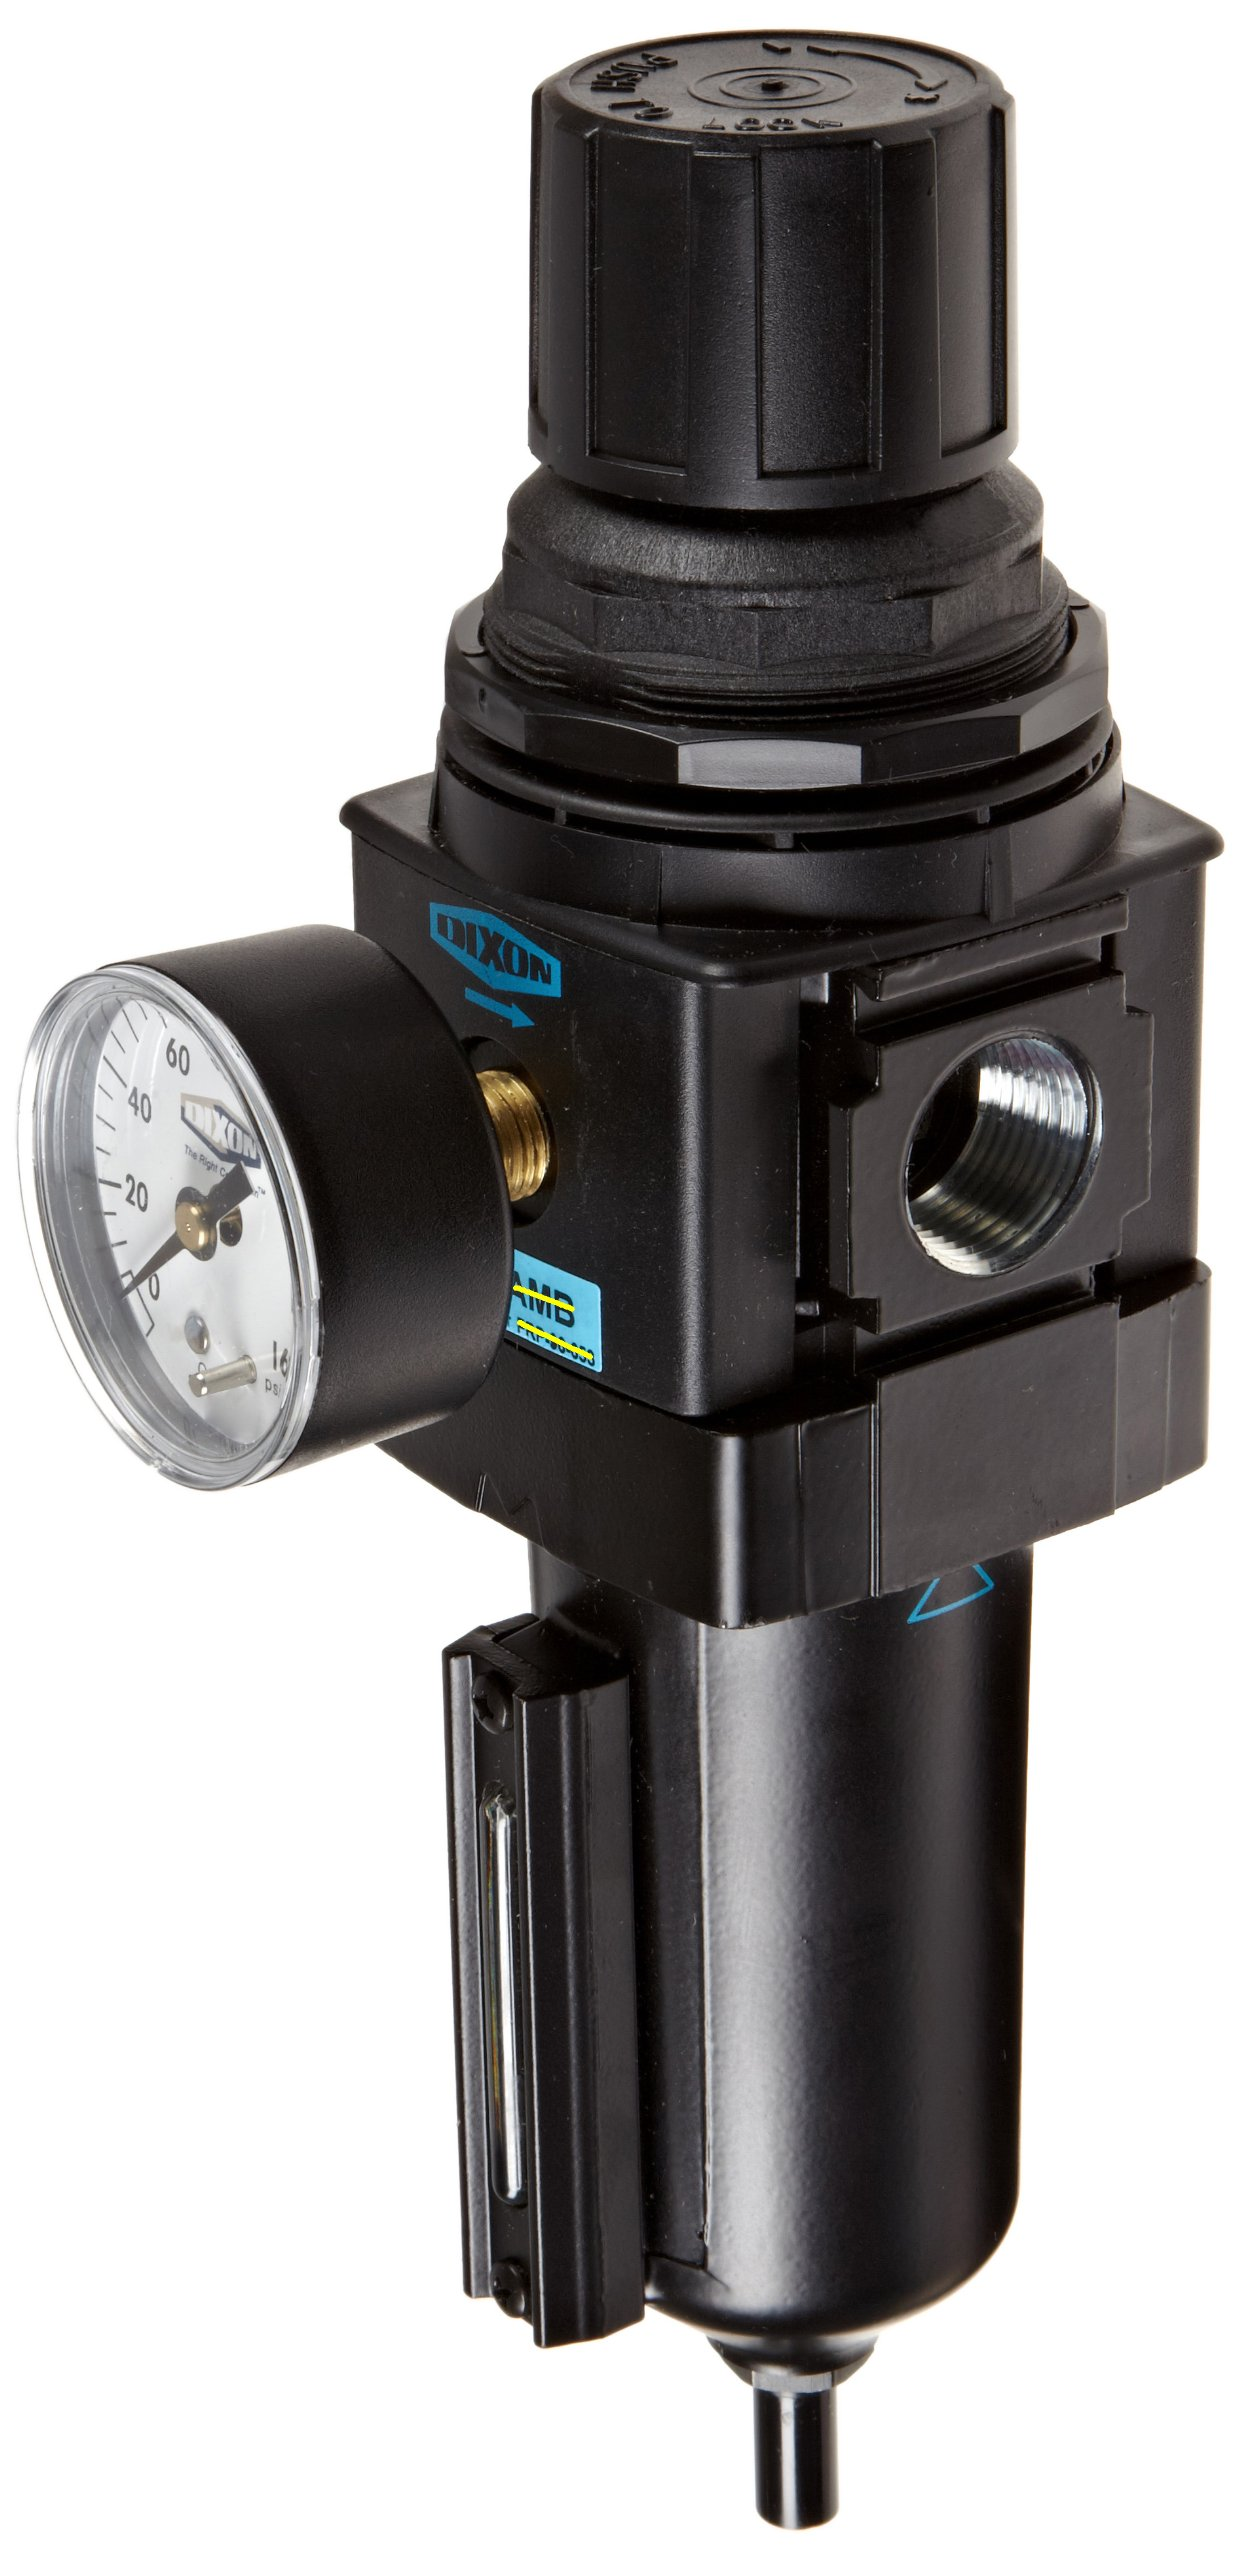 Dixon B28-06AGMB Automatic Drain Wilkerson Standard Filter/Regulator with Metal Bowl and Sight Glass, 3/4'' Size, 175 SCFM Flow, 250 psig Pressure by Dixon Valve & Coupling